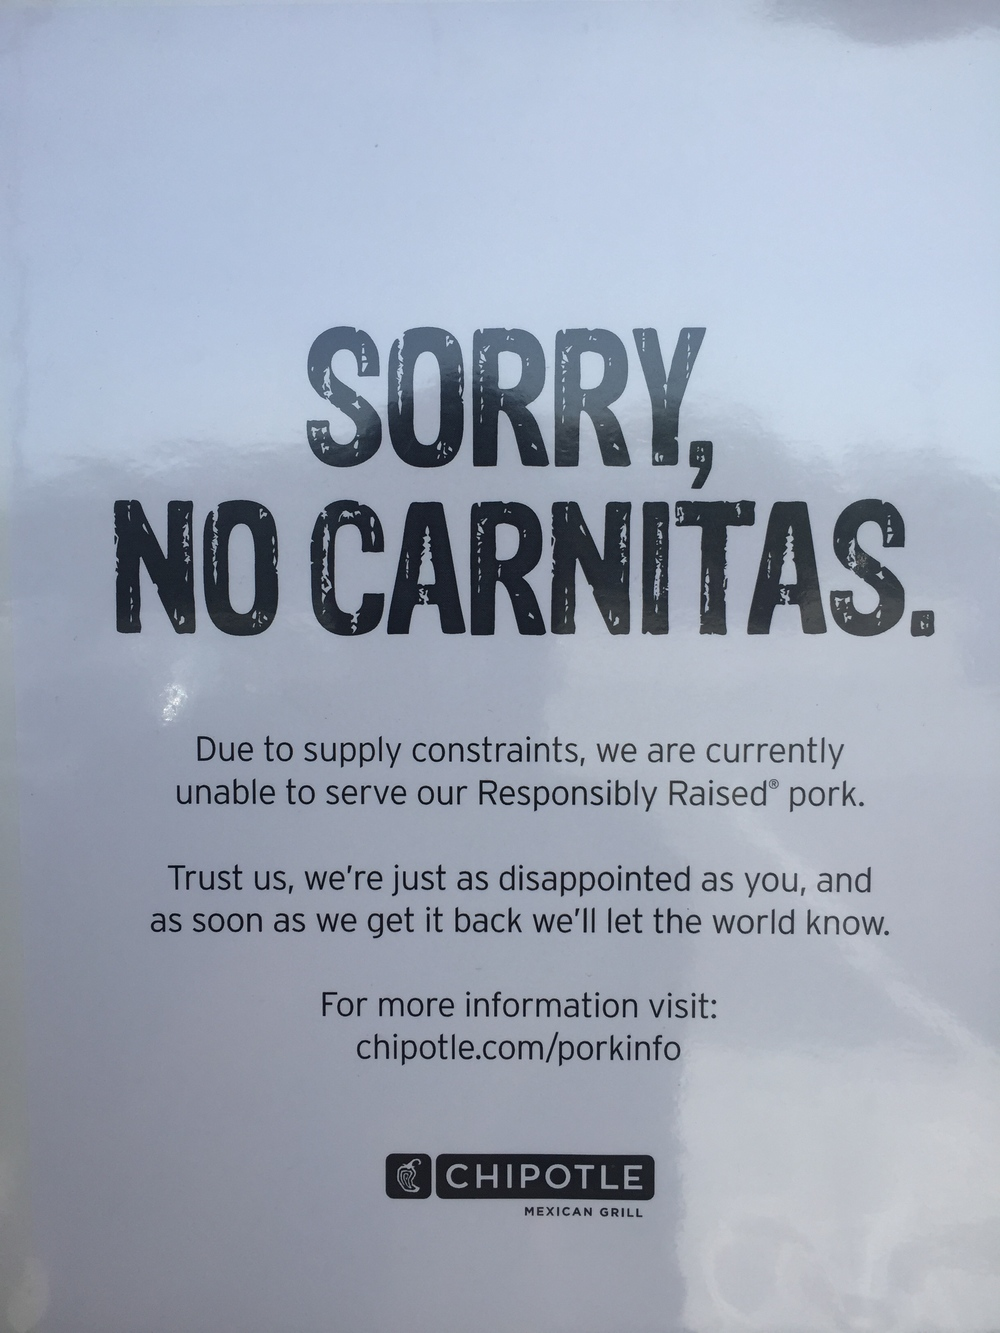 You may have seen this sign at Chipotle recently. Good for them for refusing to lower standards!